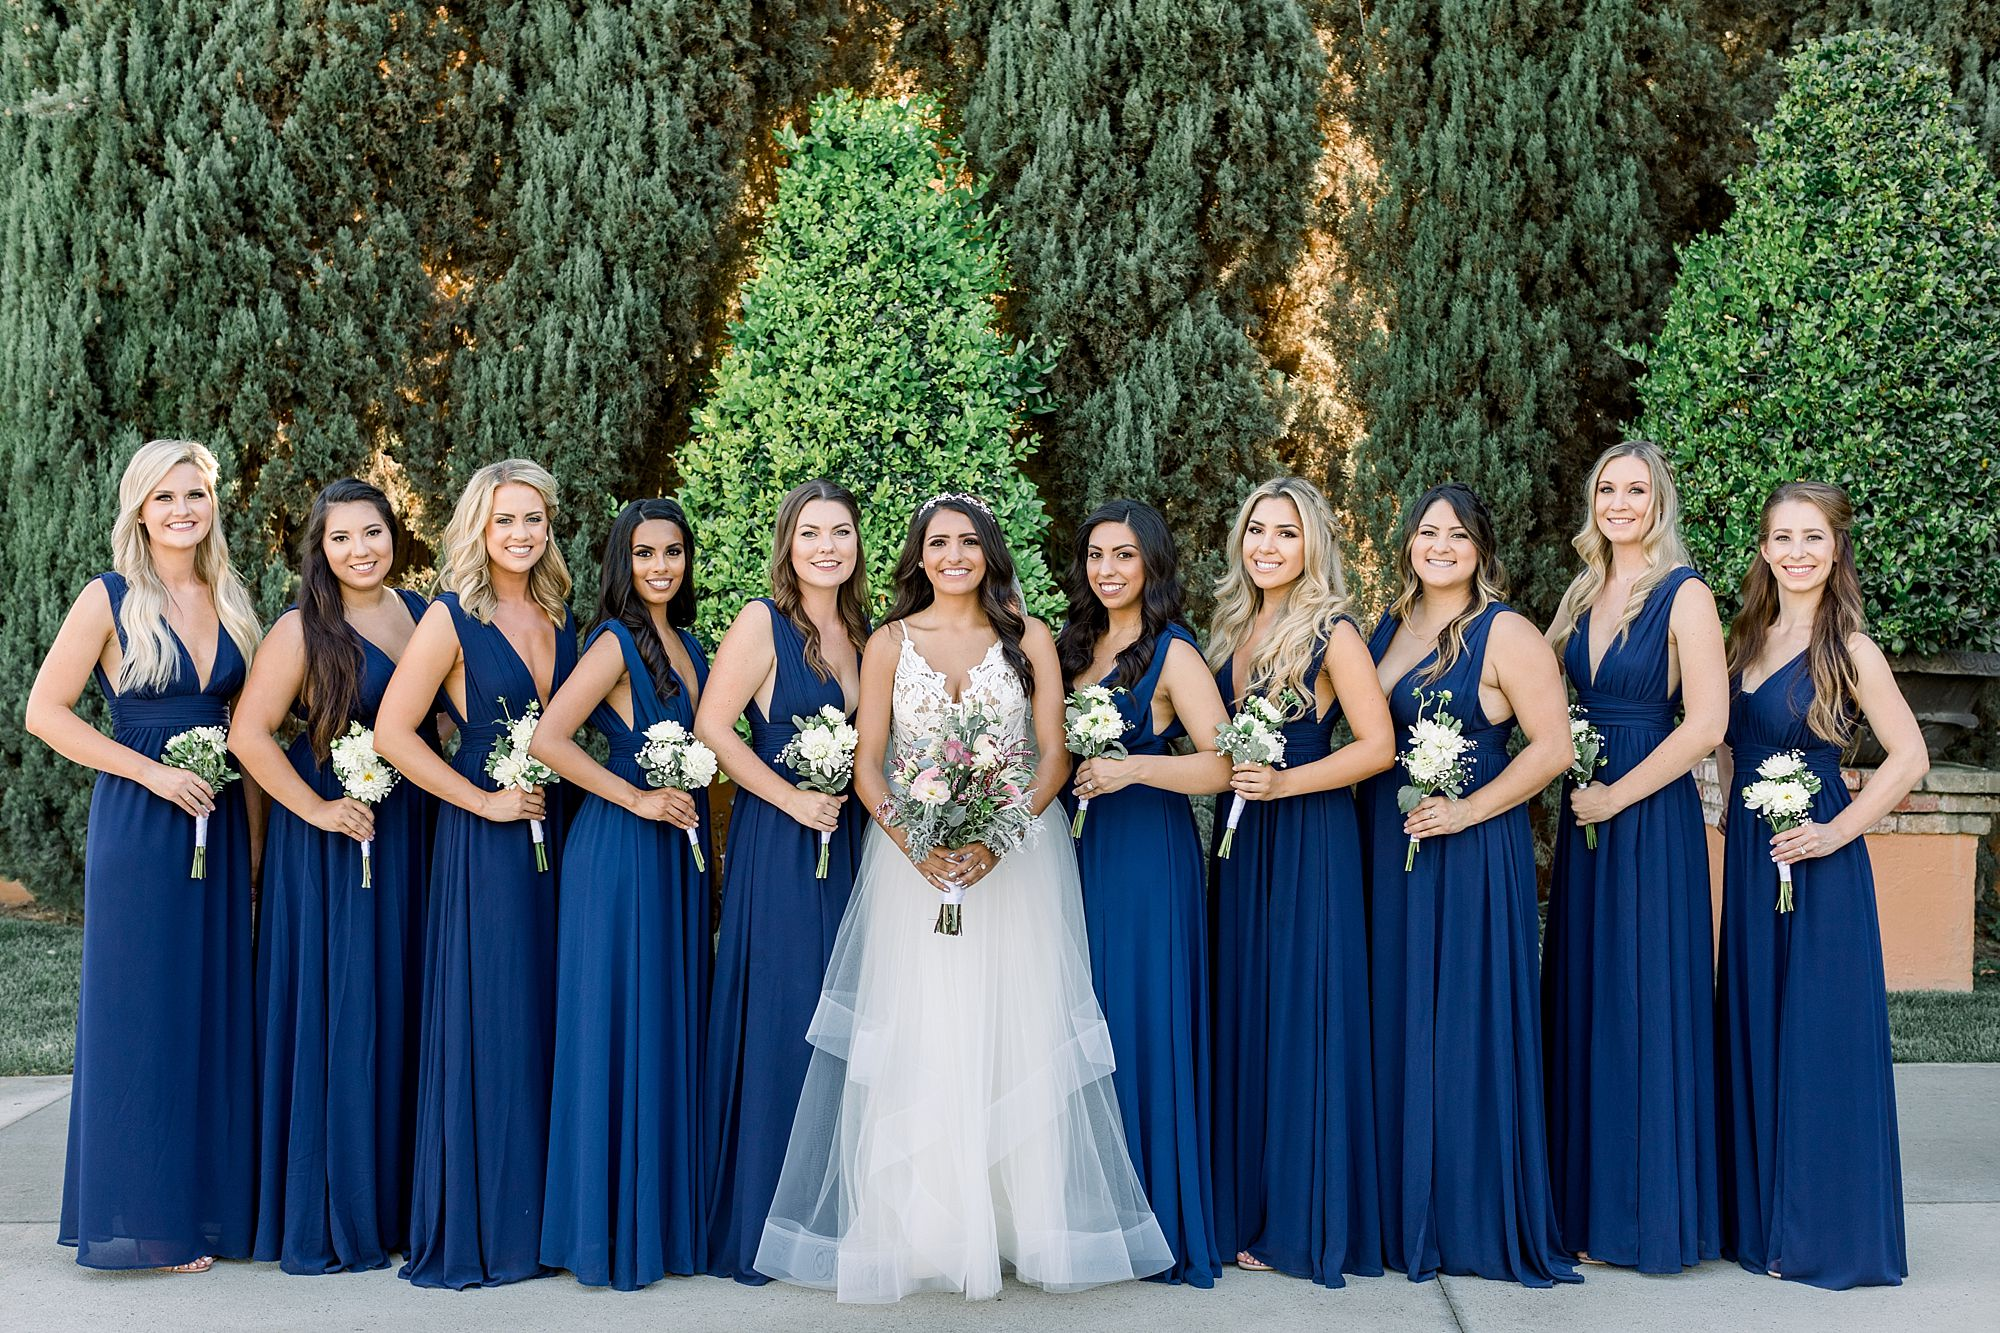 The River Mill Wedding Stockton - Ashley Baumgartner - Stockton Wedding Photographer - Sacramento Wedding Photography - Hybrid and Film Photographer - Sacramento Film Photographer_0022.jpg